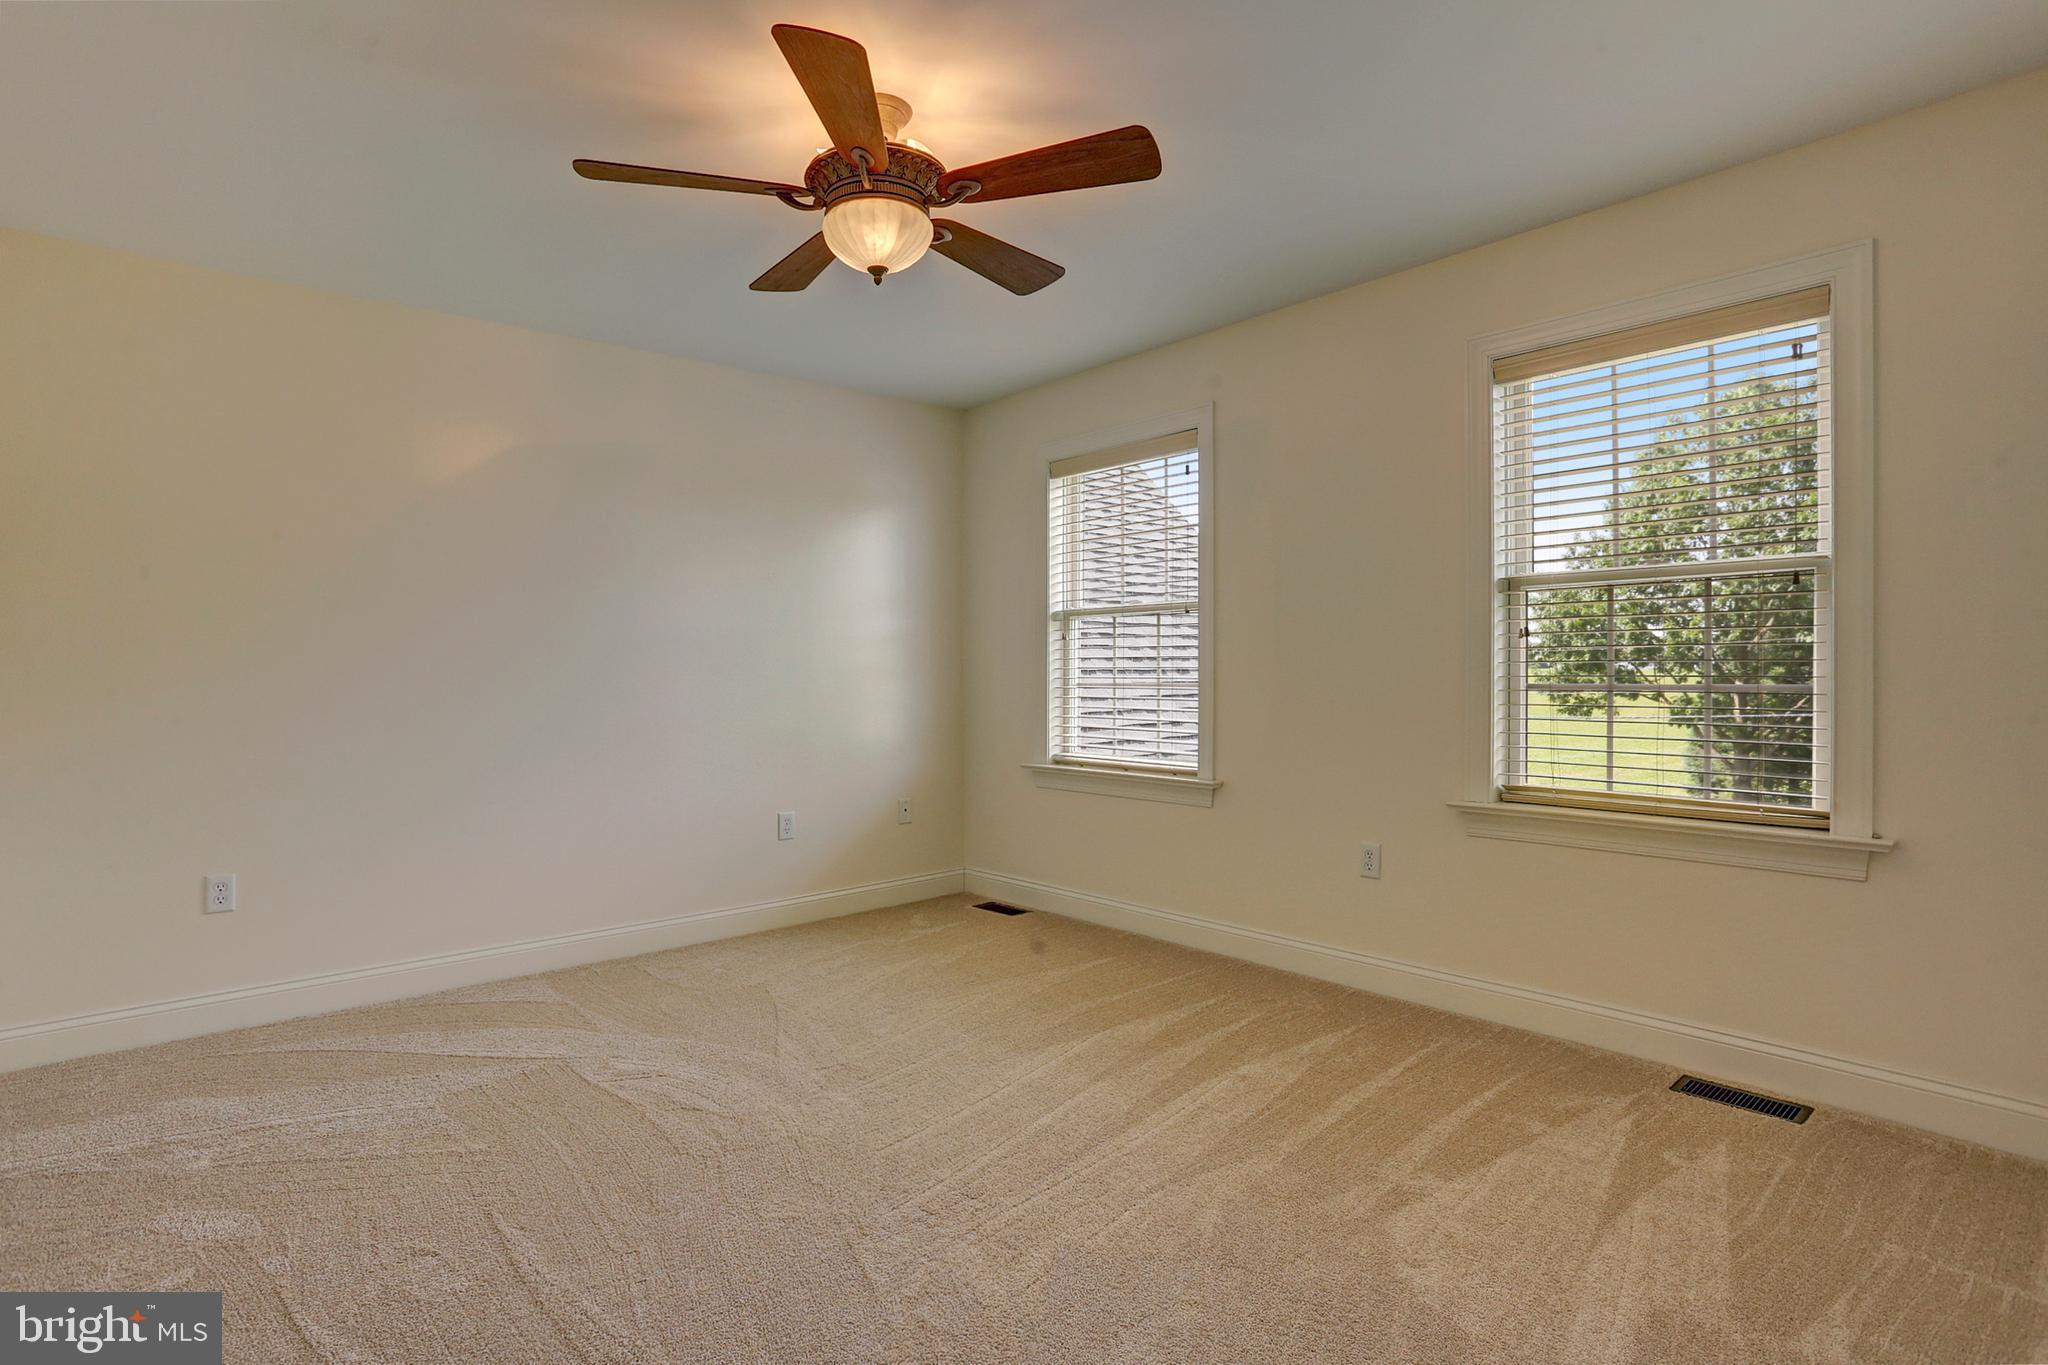 Bedroom 4 with Carpett and a Ceiling Fan